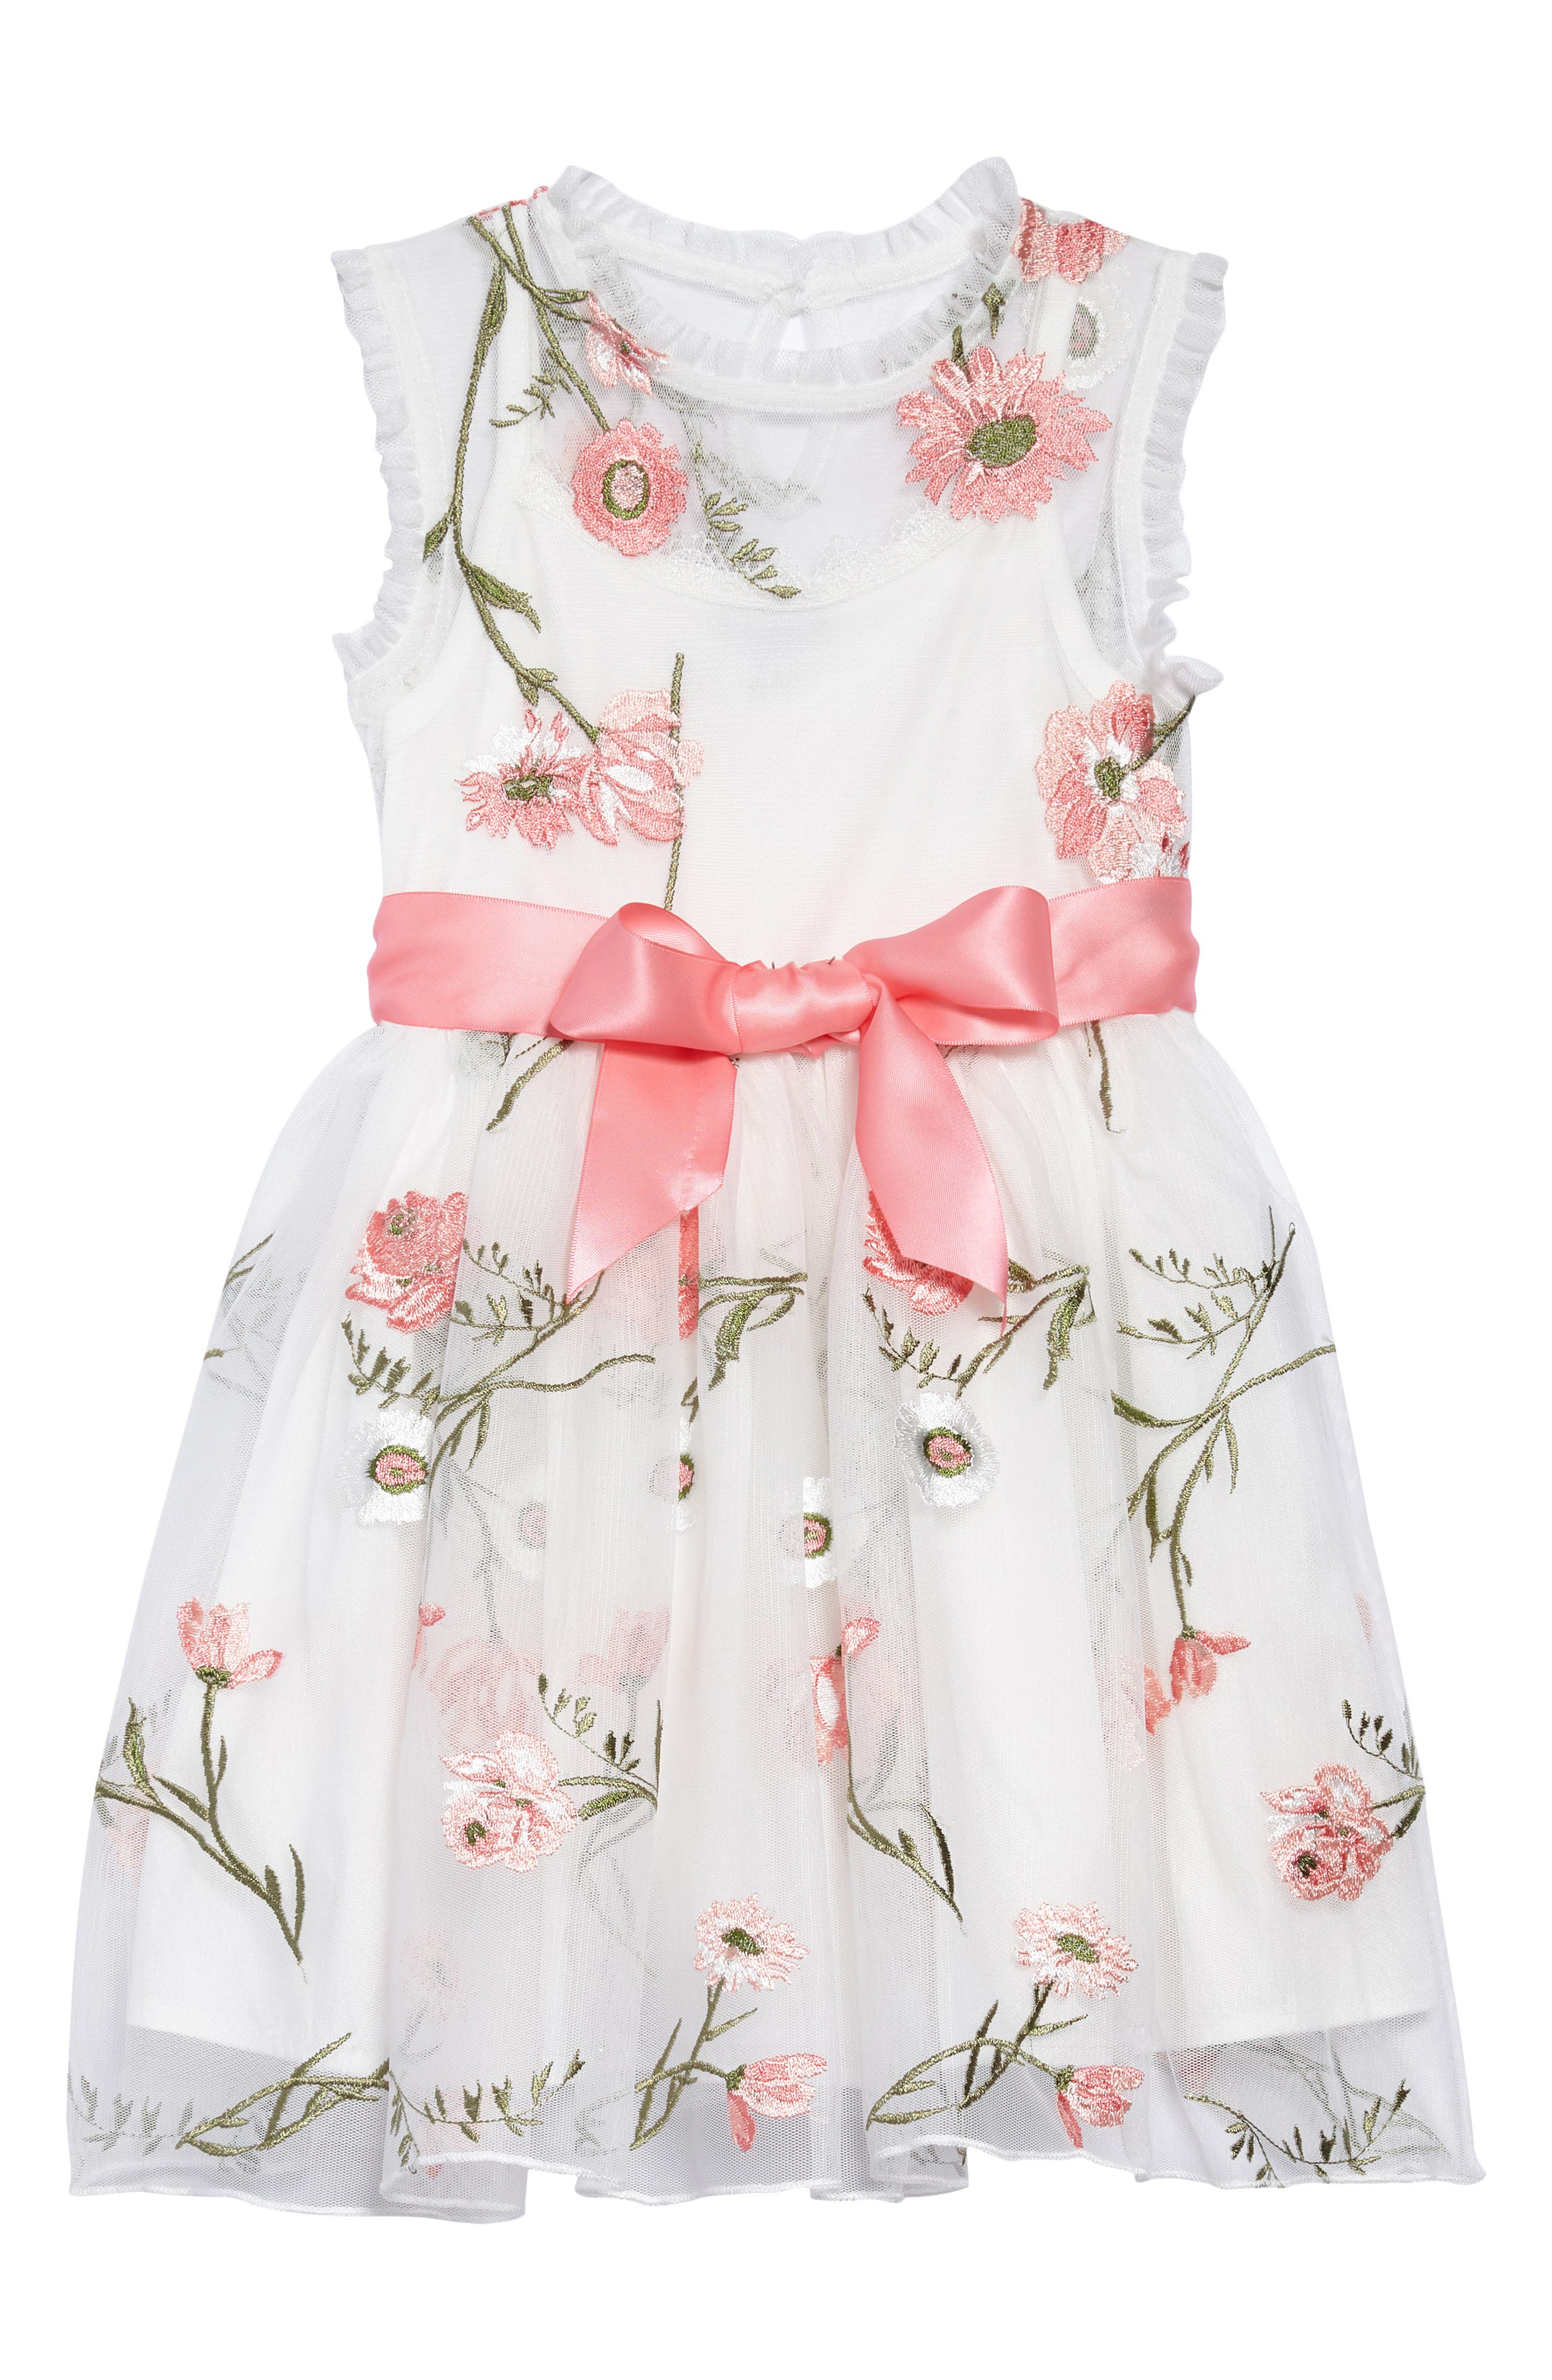 Embroidered Flower Dress,                         Main,                         color, White/ Coral